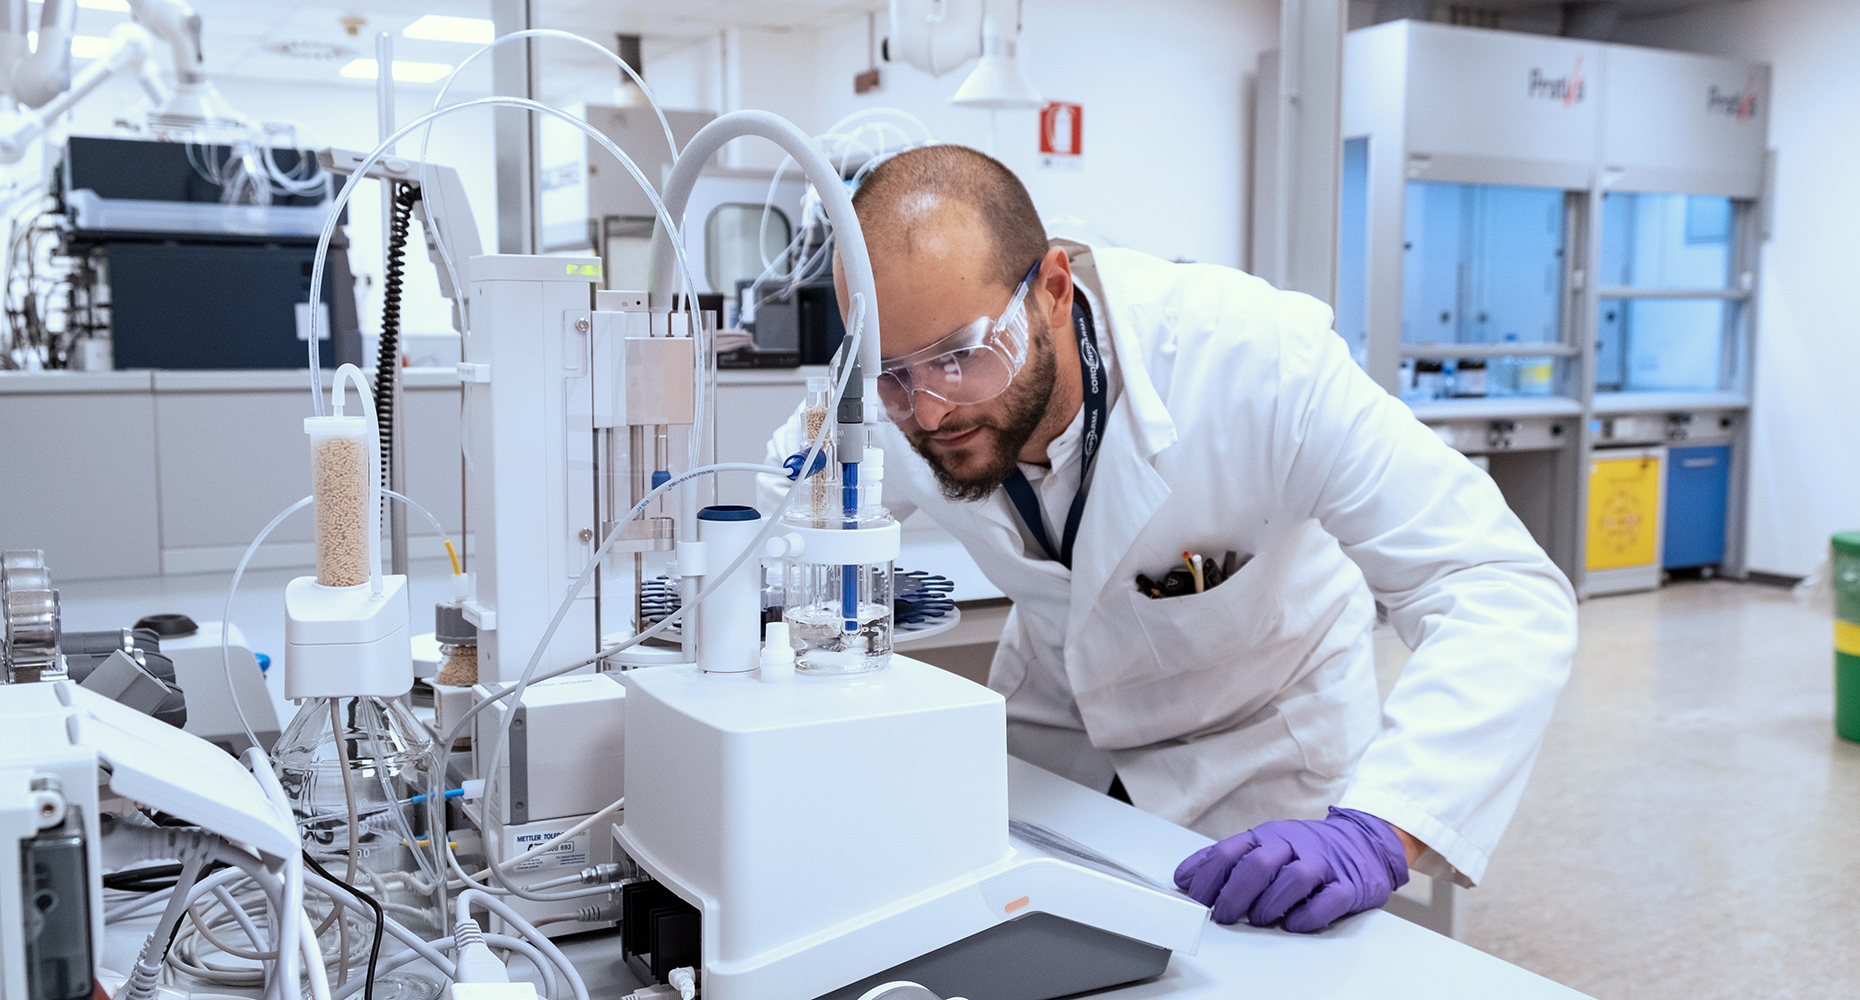 R&D scientist working with lab equipment at CordenPharma Caponago in Italy